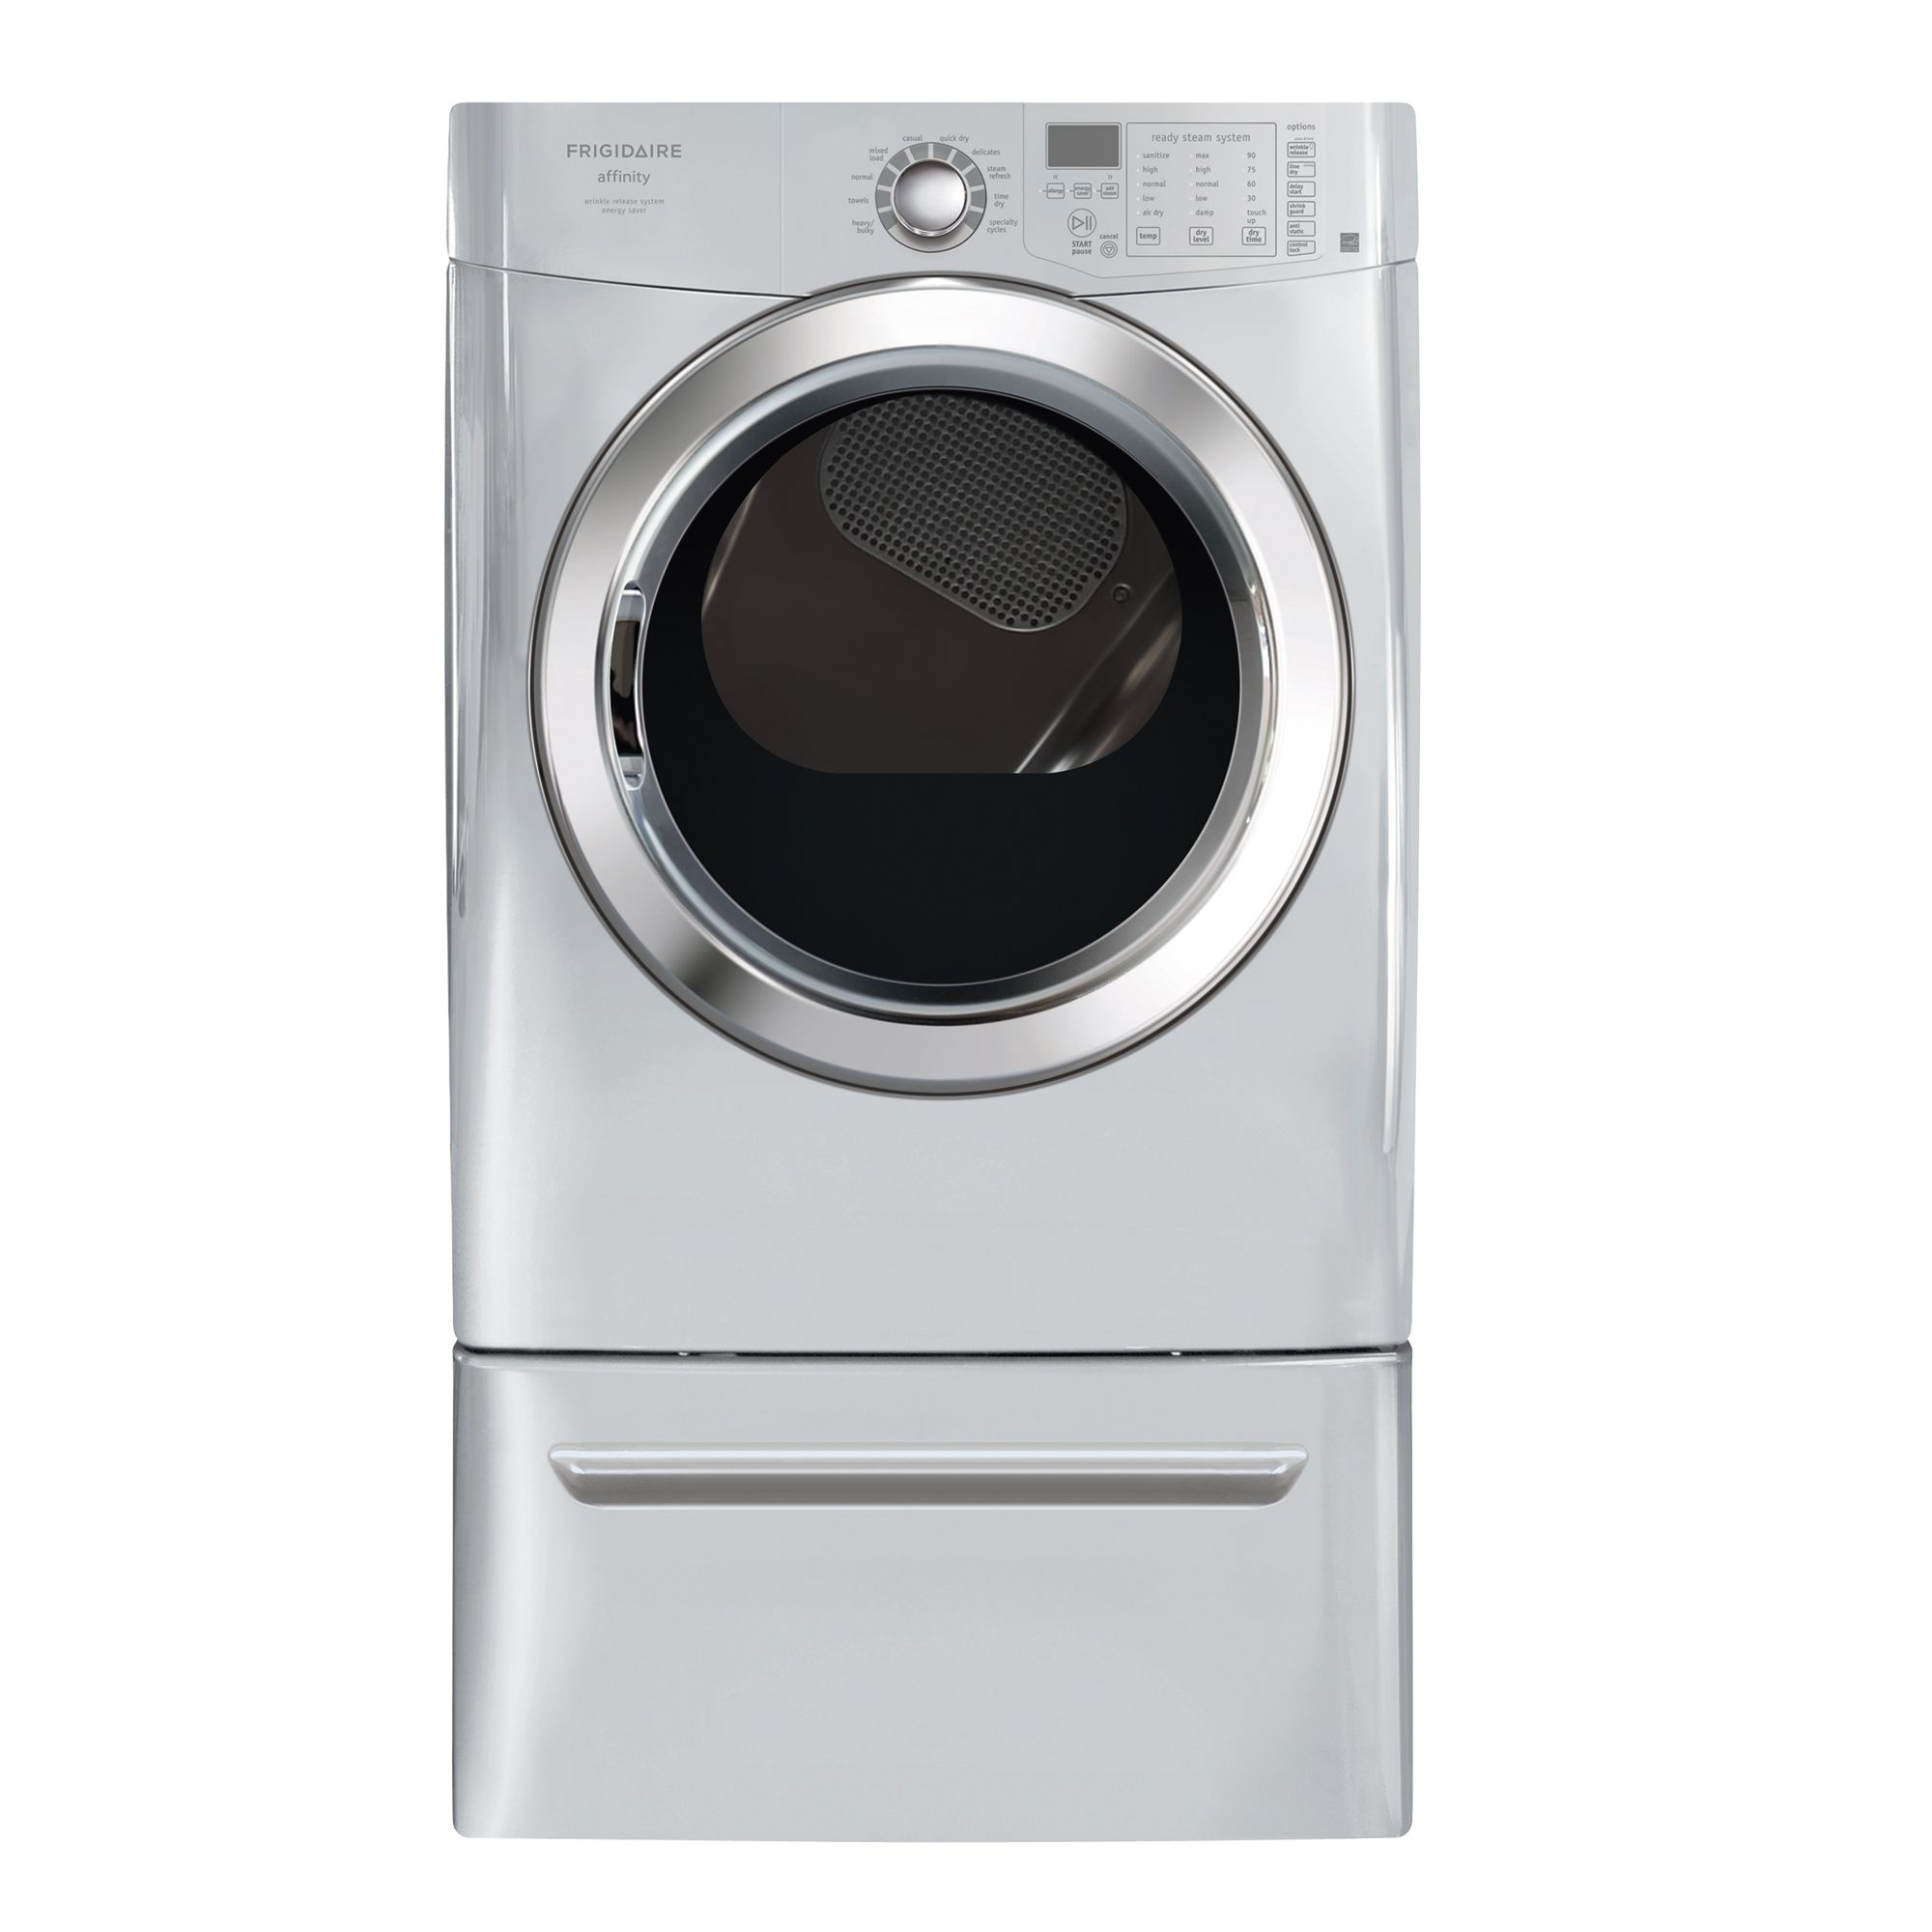 Frigidaire Affinity 7.0 cu. ft. Electric Steam Dryer (FASE7074)